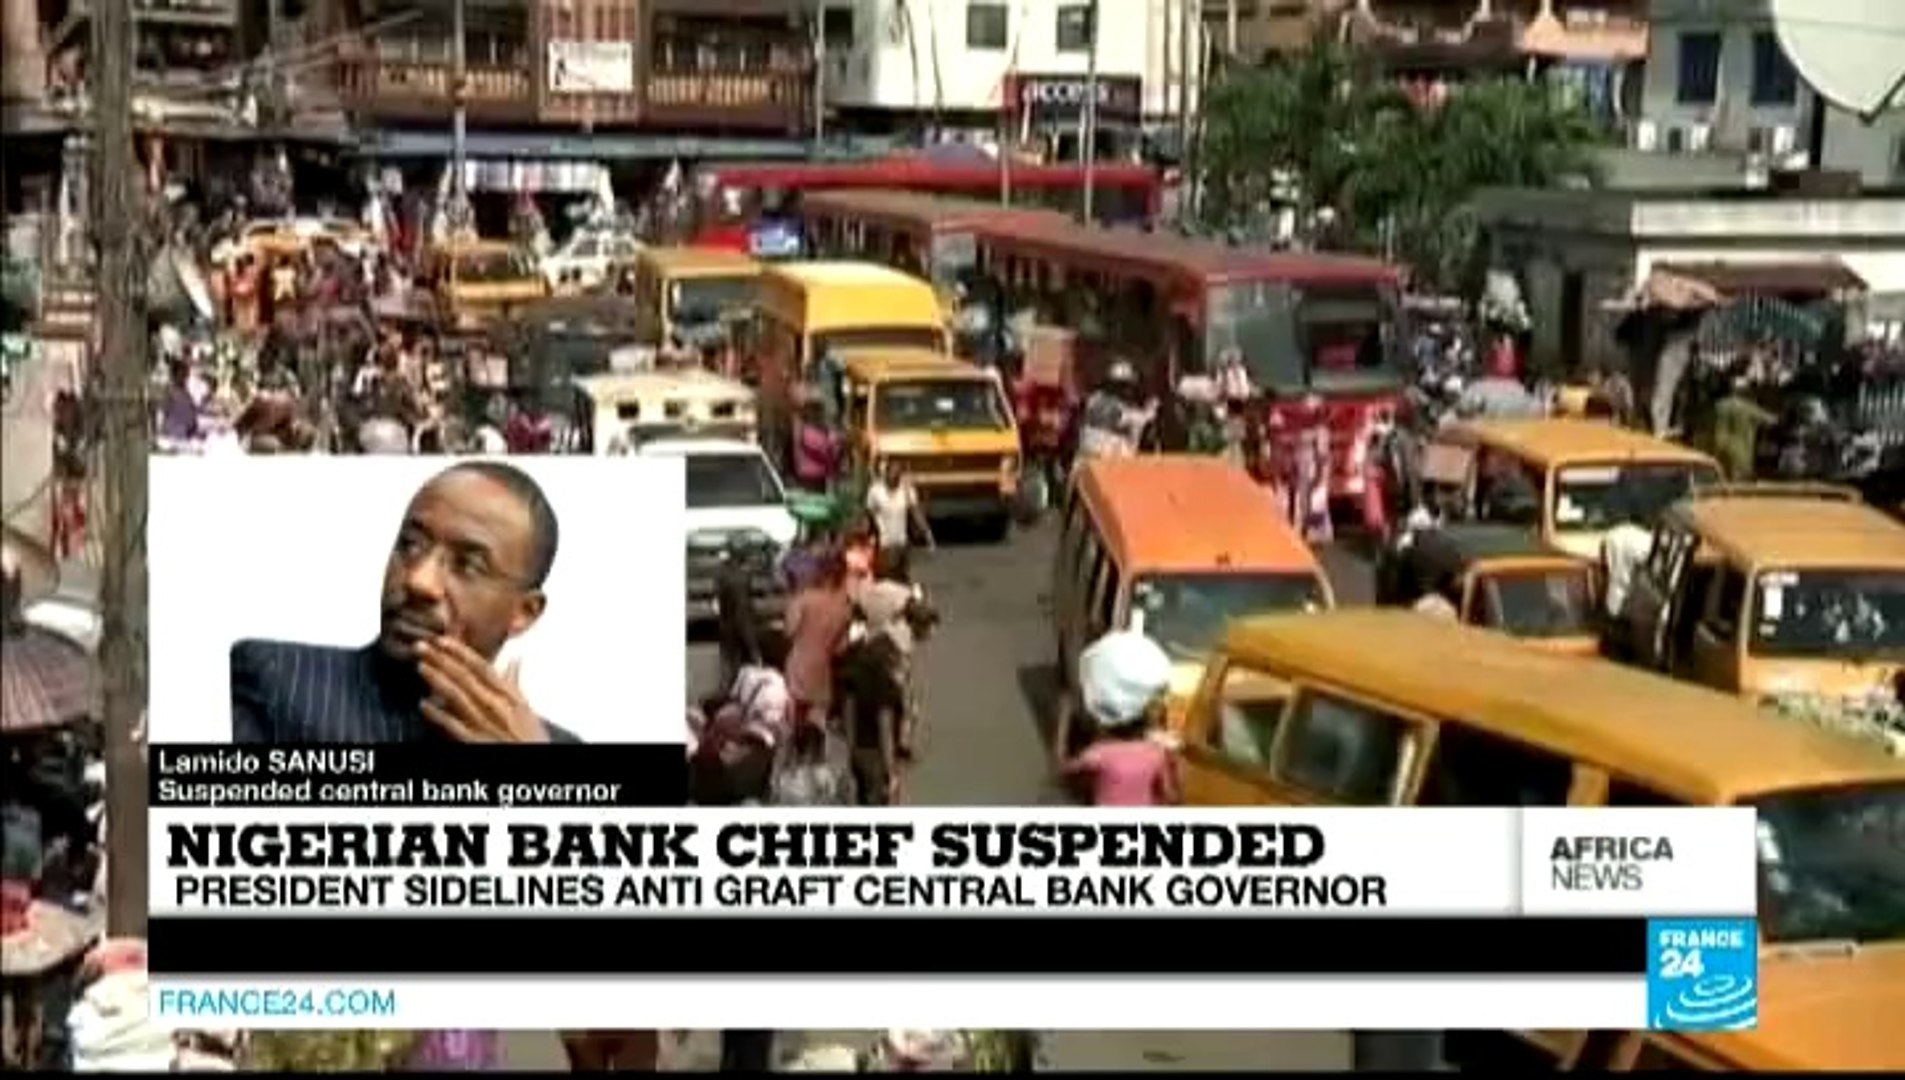 Africa News - Nigerian Central Bank chief suspended